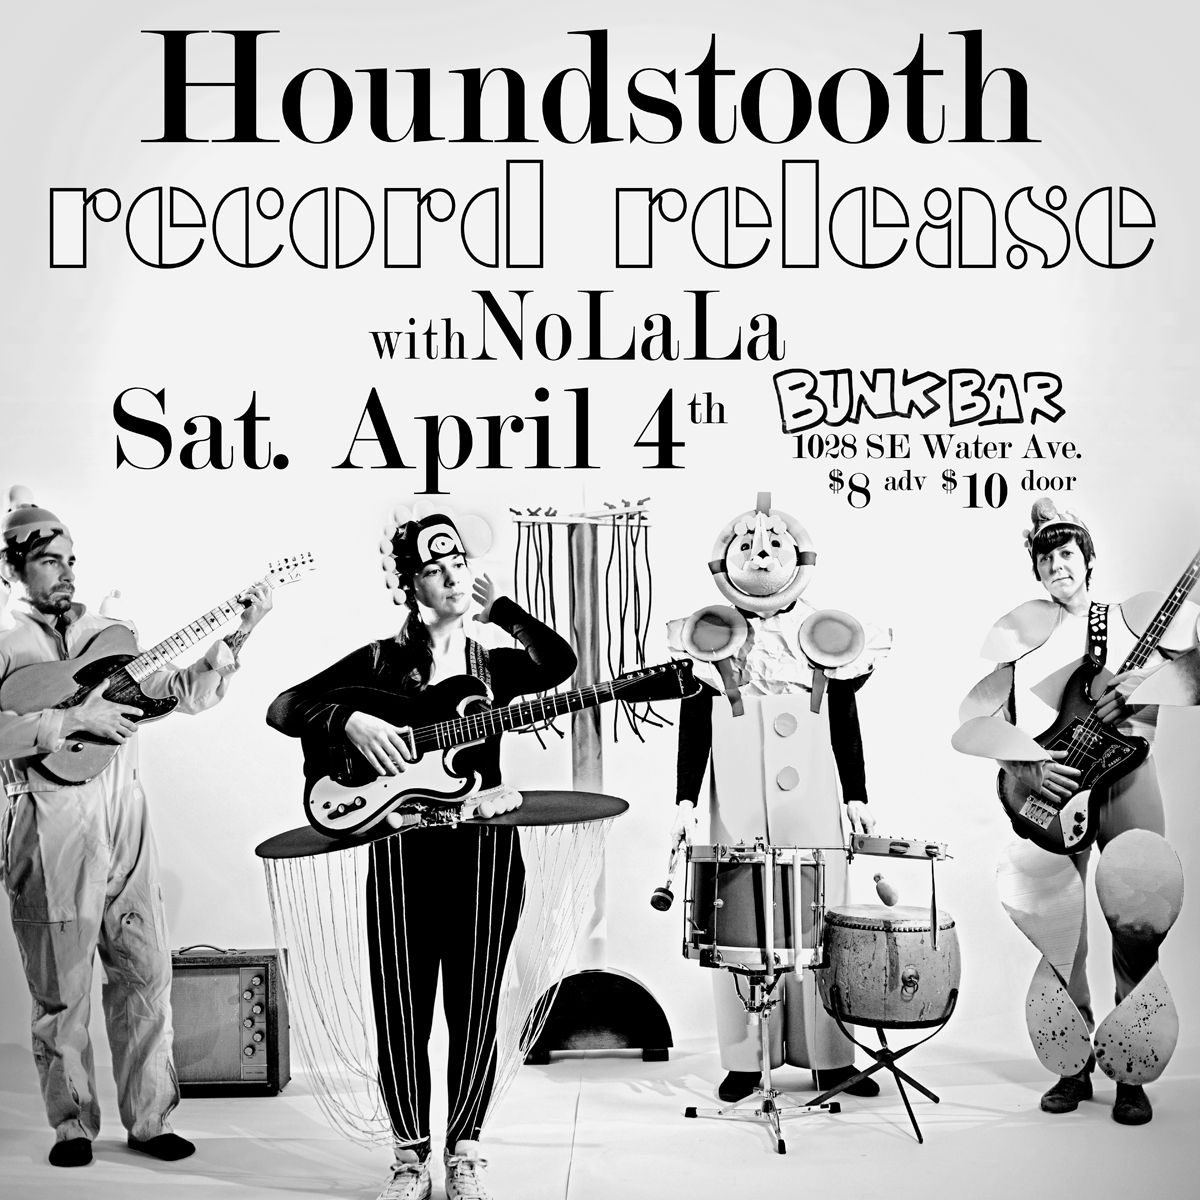 houndstooth-record-release-flyer_WEB.jpg